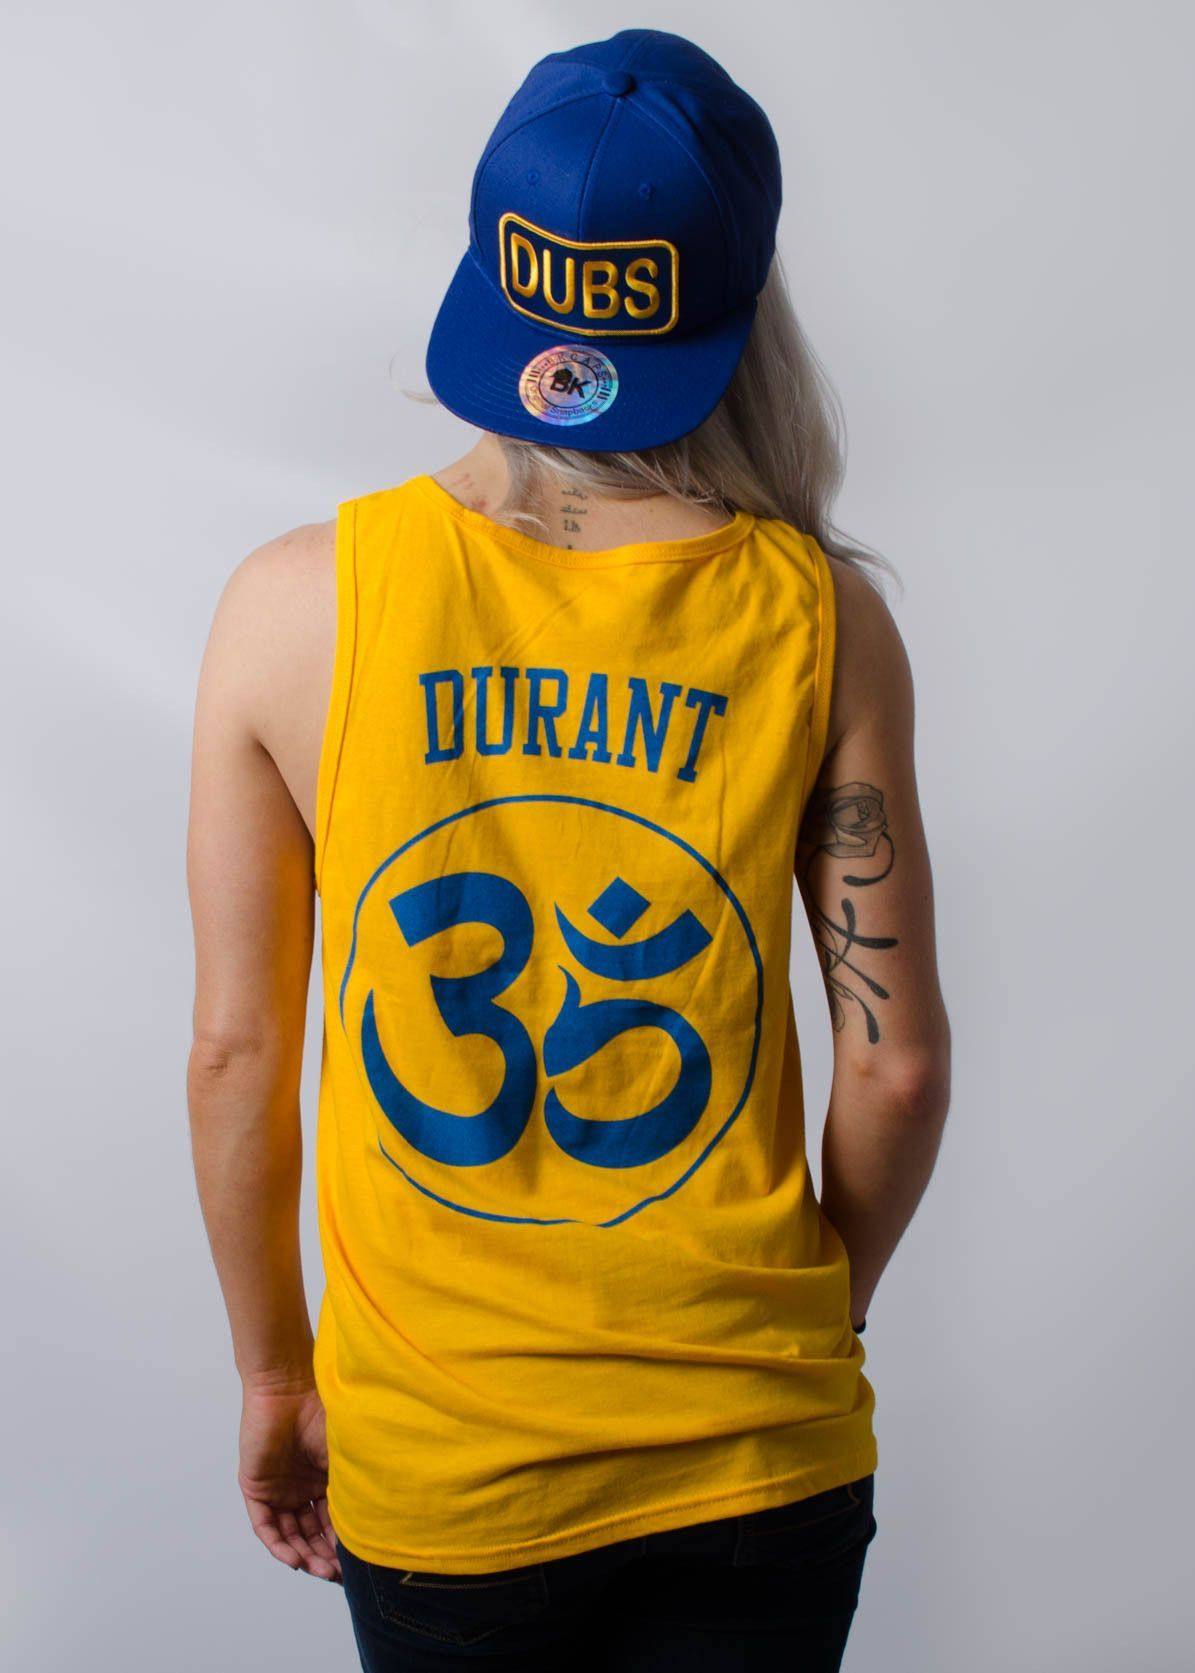 b98d7ec9b27 Durant Om Tank  Warriors  GoldenStateWarriors  StephCurry  Curry  Dubs   DubNation